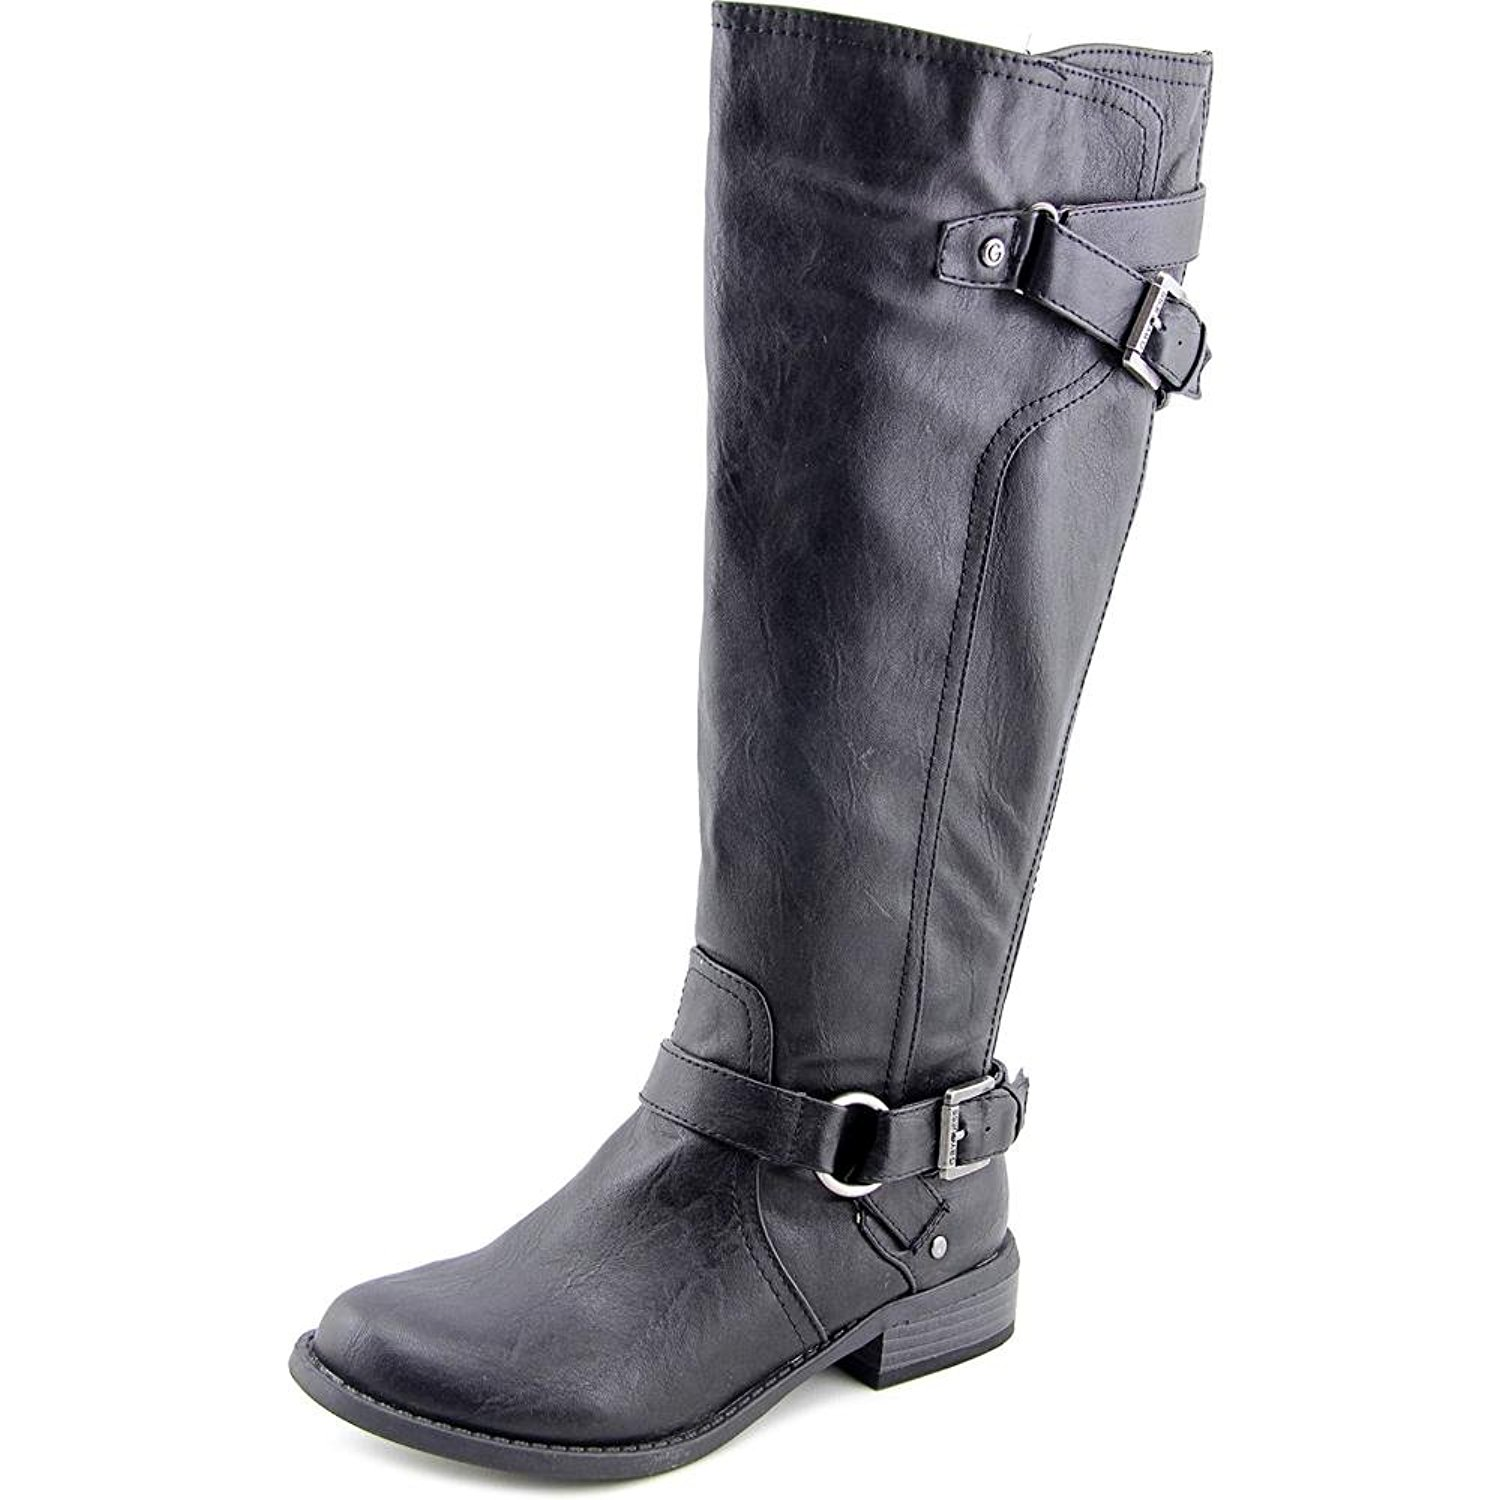 G by Guess Womens HING WIDE CALF Round Toe Knee High Riding Black WC Size 7.0